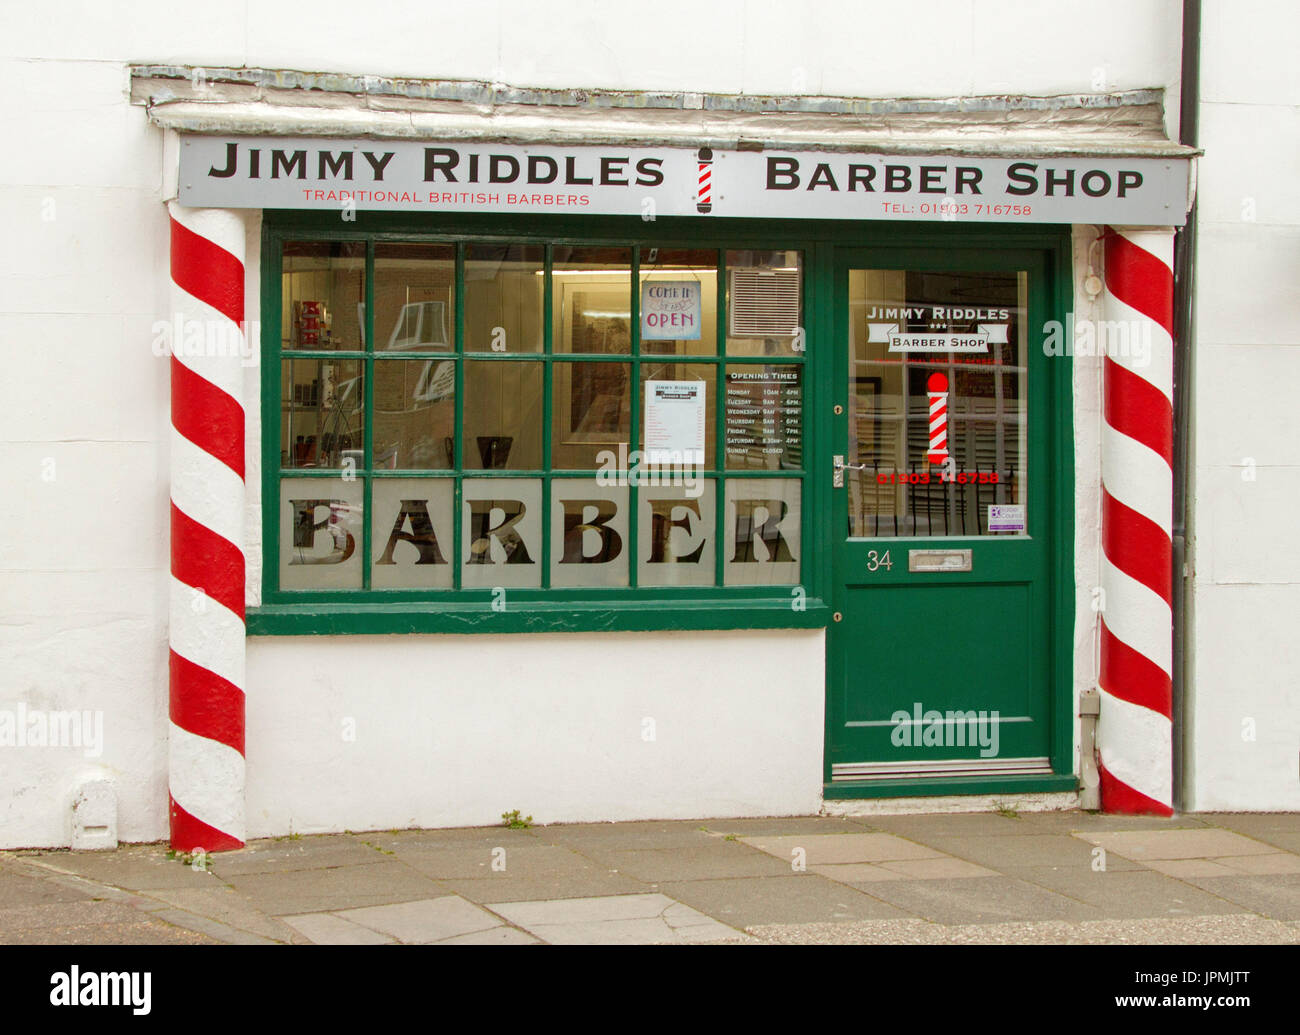 Exterior of Jimmy Riddles Barber's shop with red and white striped barber's pole, green door, and white wall, in Littlehampton, England - Stock Image